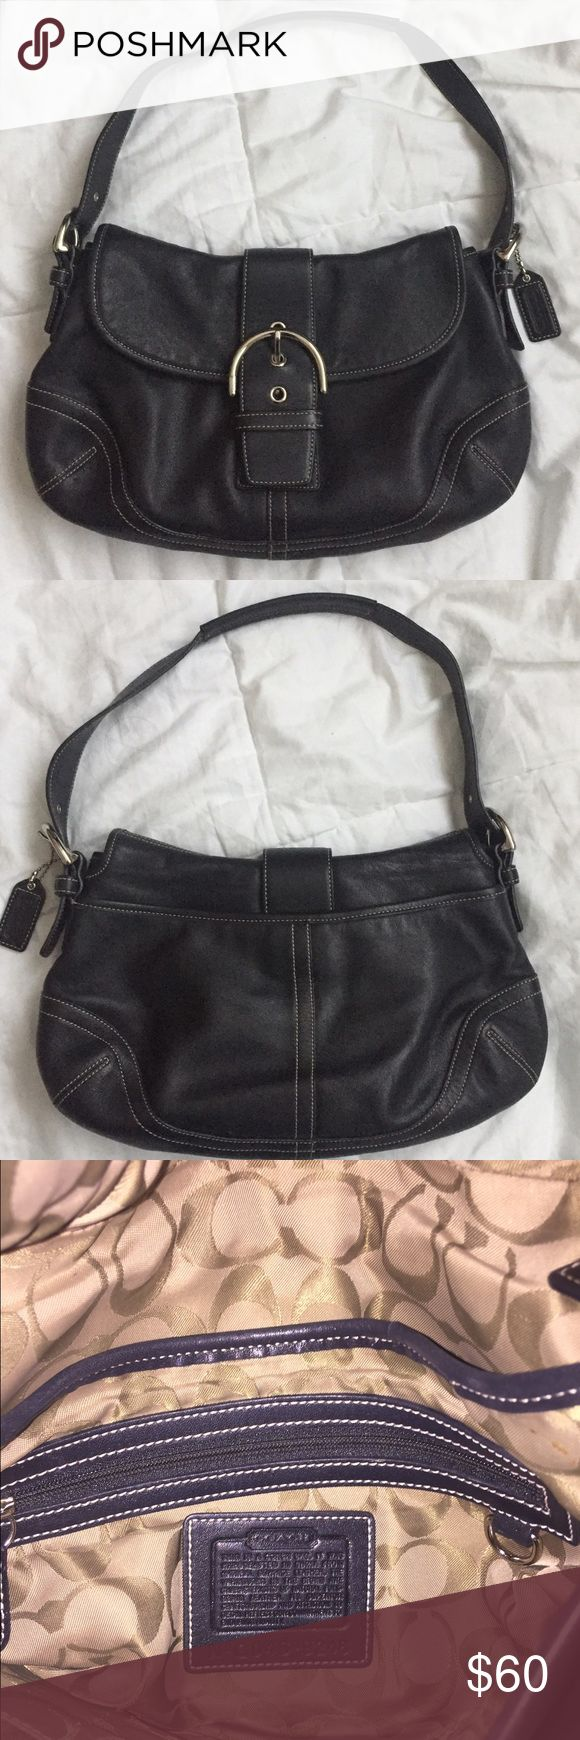 """Coach Hobo Shoulder Bag Coach Hobo Shoulder Bag   Excellent gently used condition. Inner lining is in great condition with no holes, tears or stains. A hang tag is included. Fold over magnetic snap top closure, two sections, one with two interior slip pockets, one zippered interior pocket, the other with no additional pockets, one exterior magnetic snap pocket. Approximately 12"""" x 8"""" x 5.3 with 8"""" adjustable strap drop.  The creed number is G045-9248.   Questions? Please ask prior to…"""